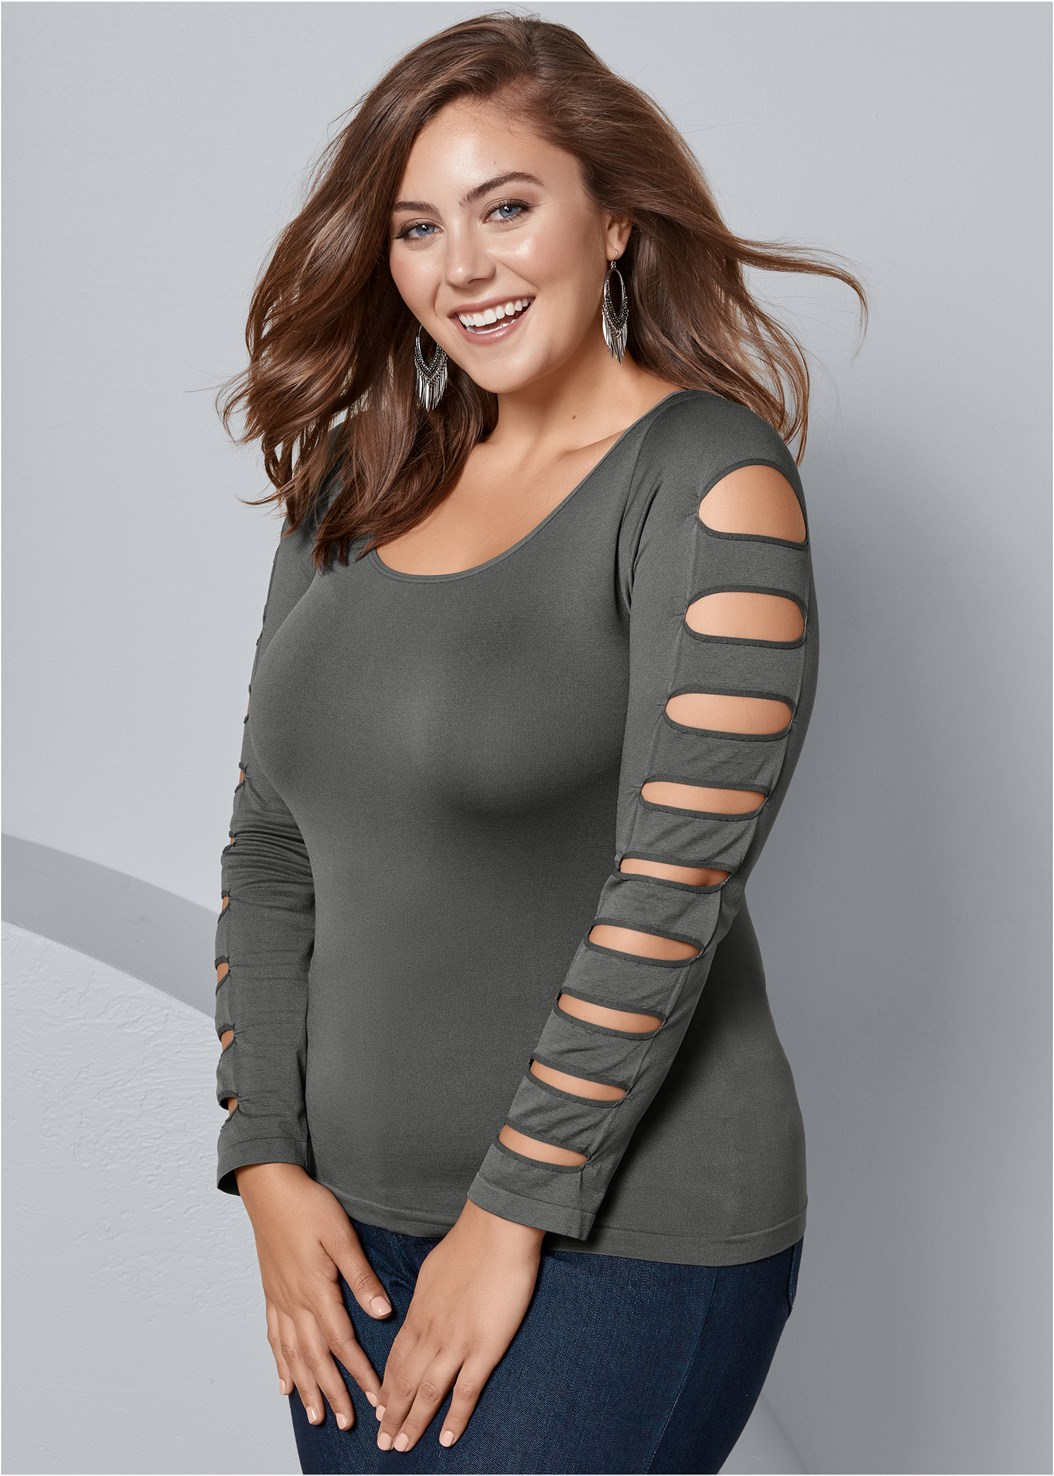 Cut Out Long Sleeve Top,Mid Rise Color Skinny Jeans,Faux Suede Pointy Booties,Tie Back Boots